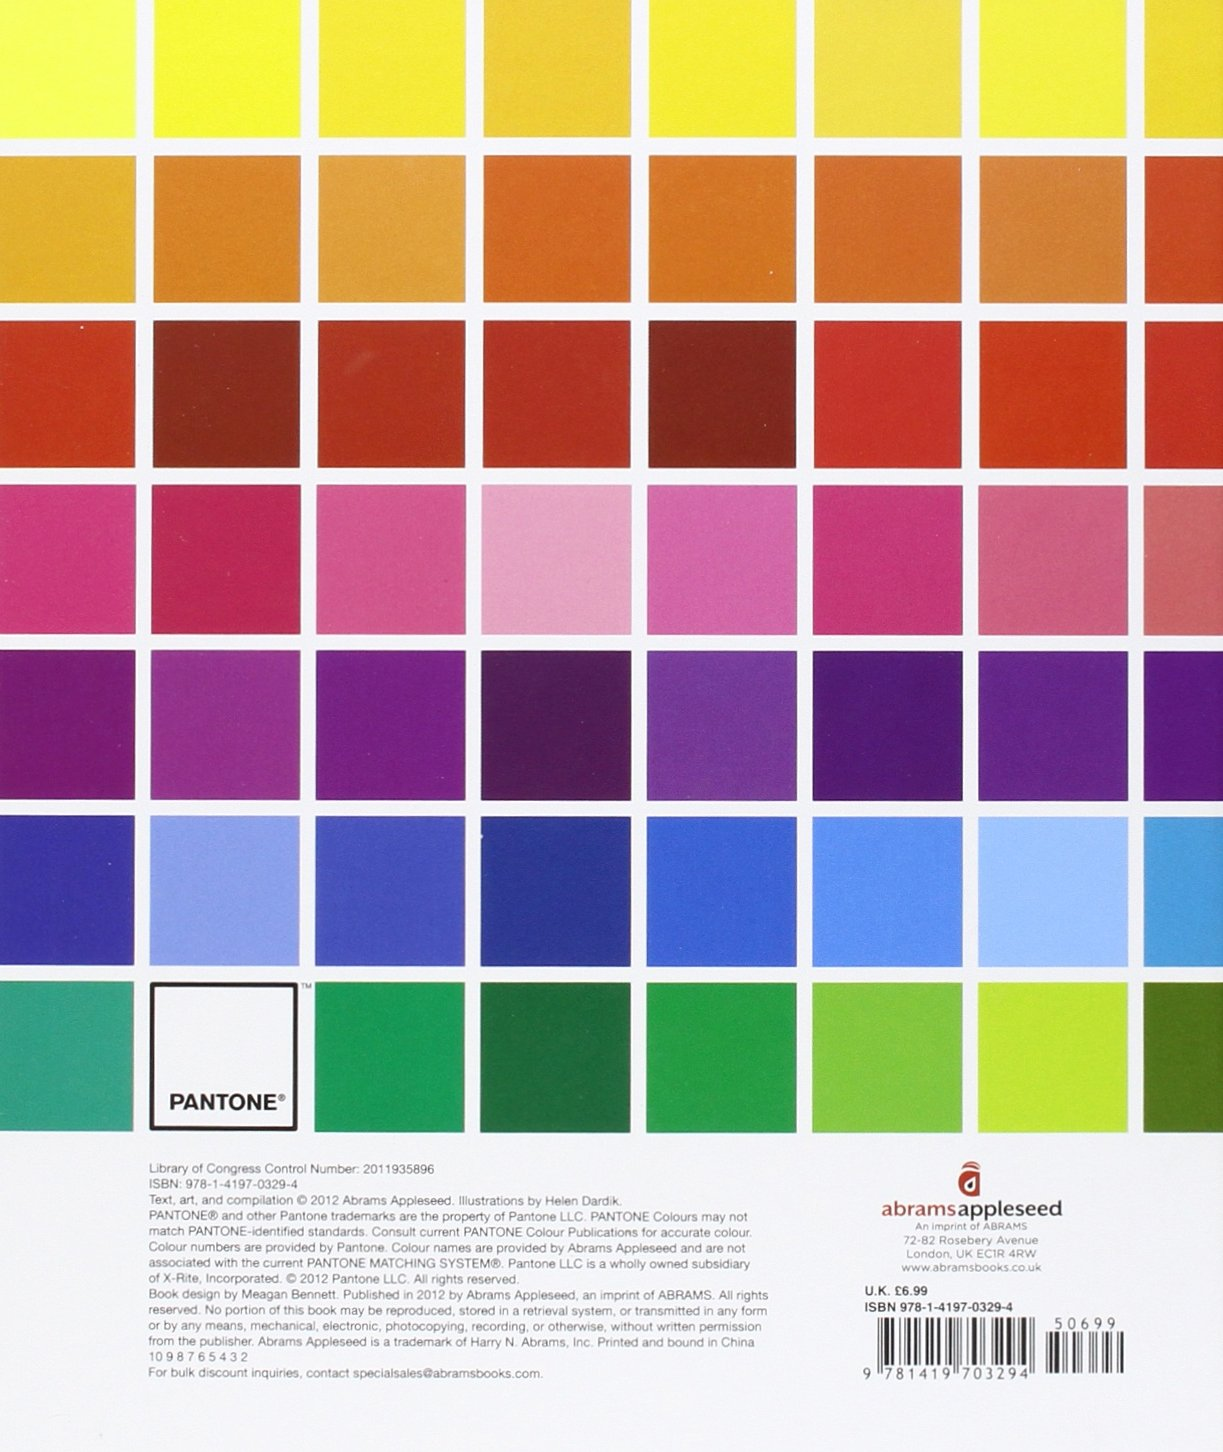 pantone colours amazoncouk pantone llc 9781419703294 books - Pantone Color Books